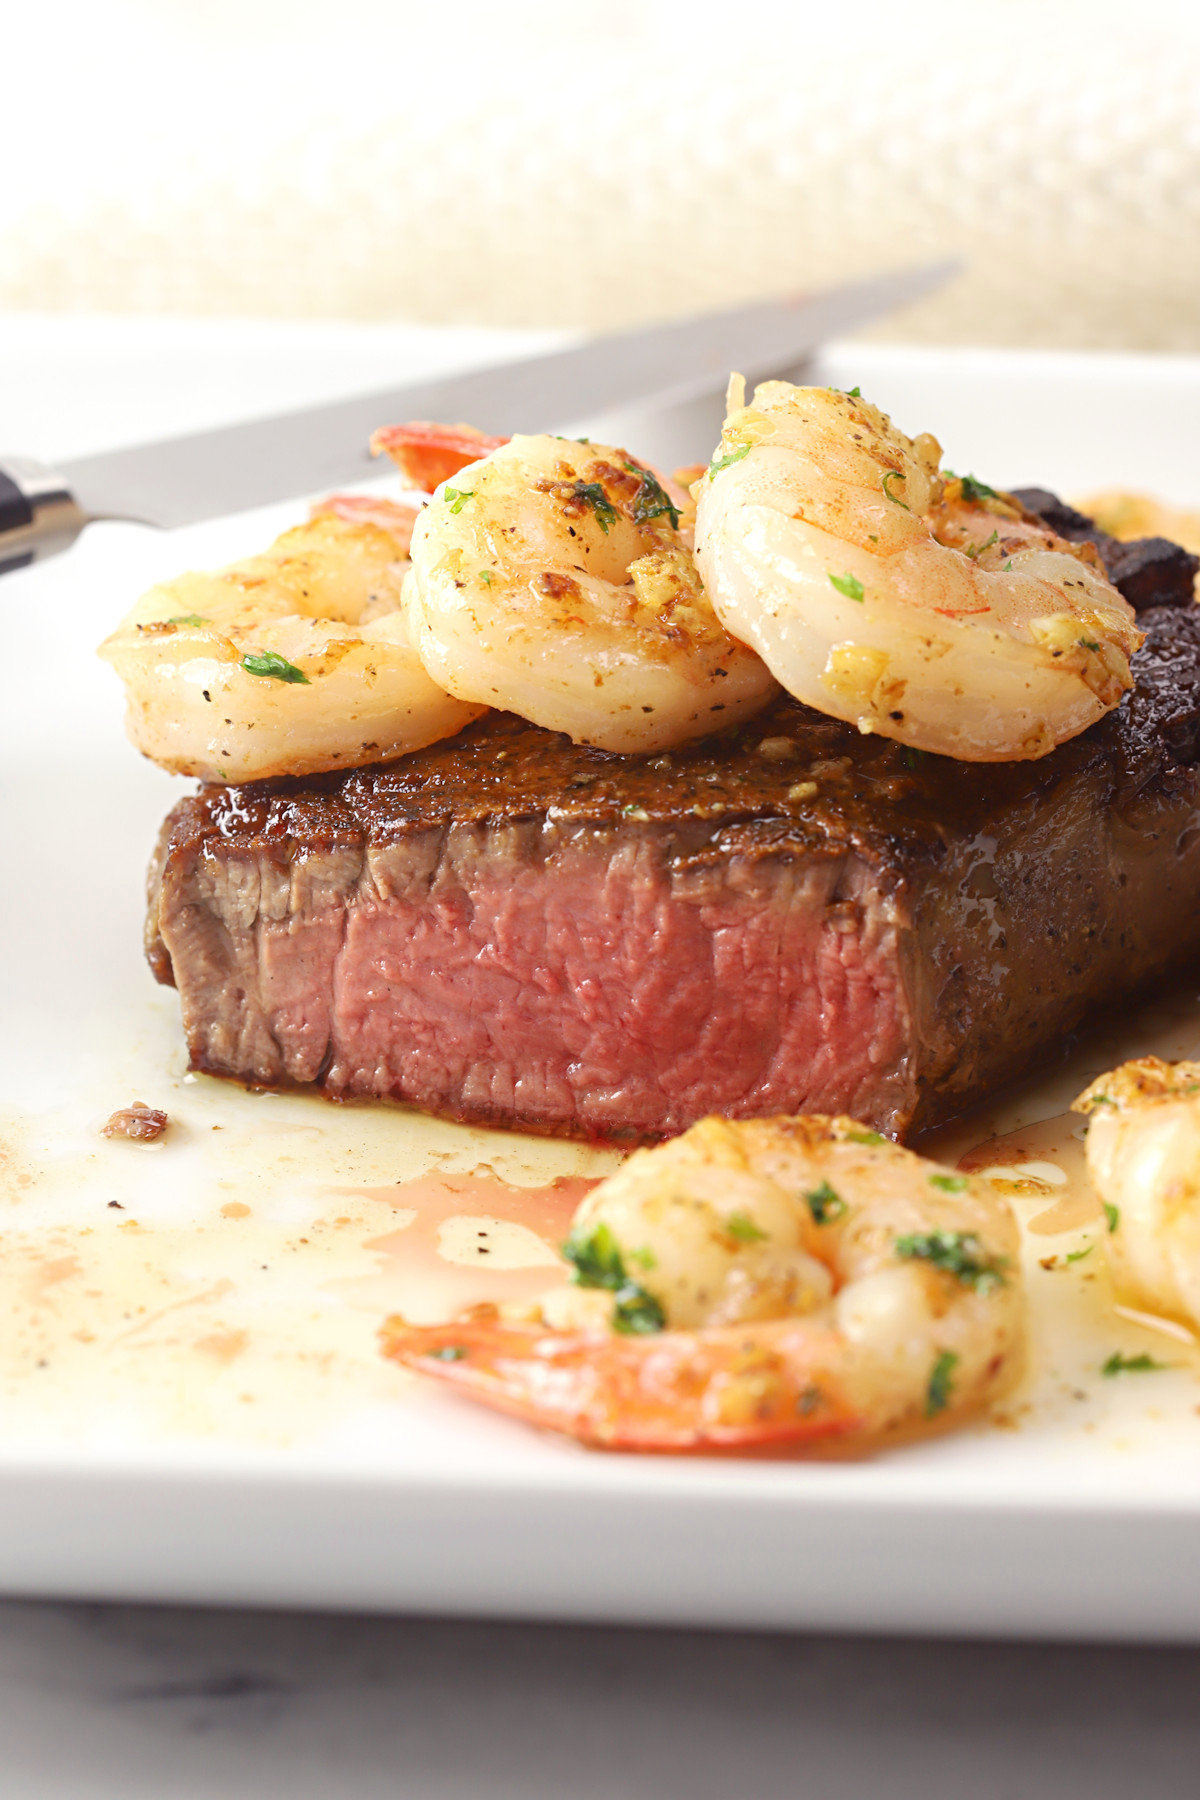 Filet mignon sliced in half and topped with garlic shrimp.